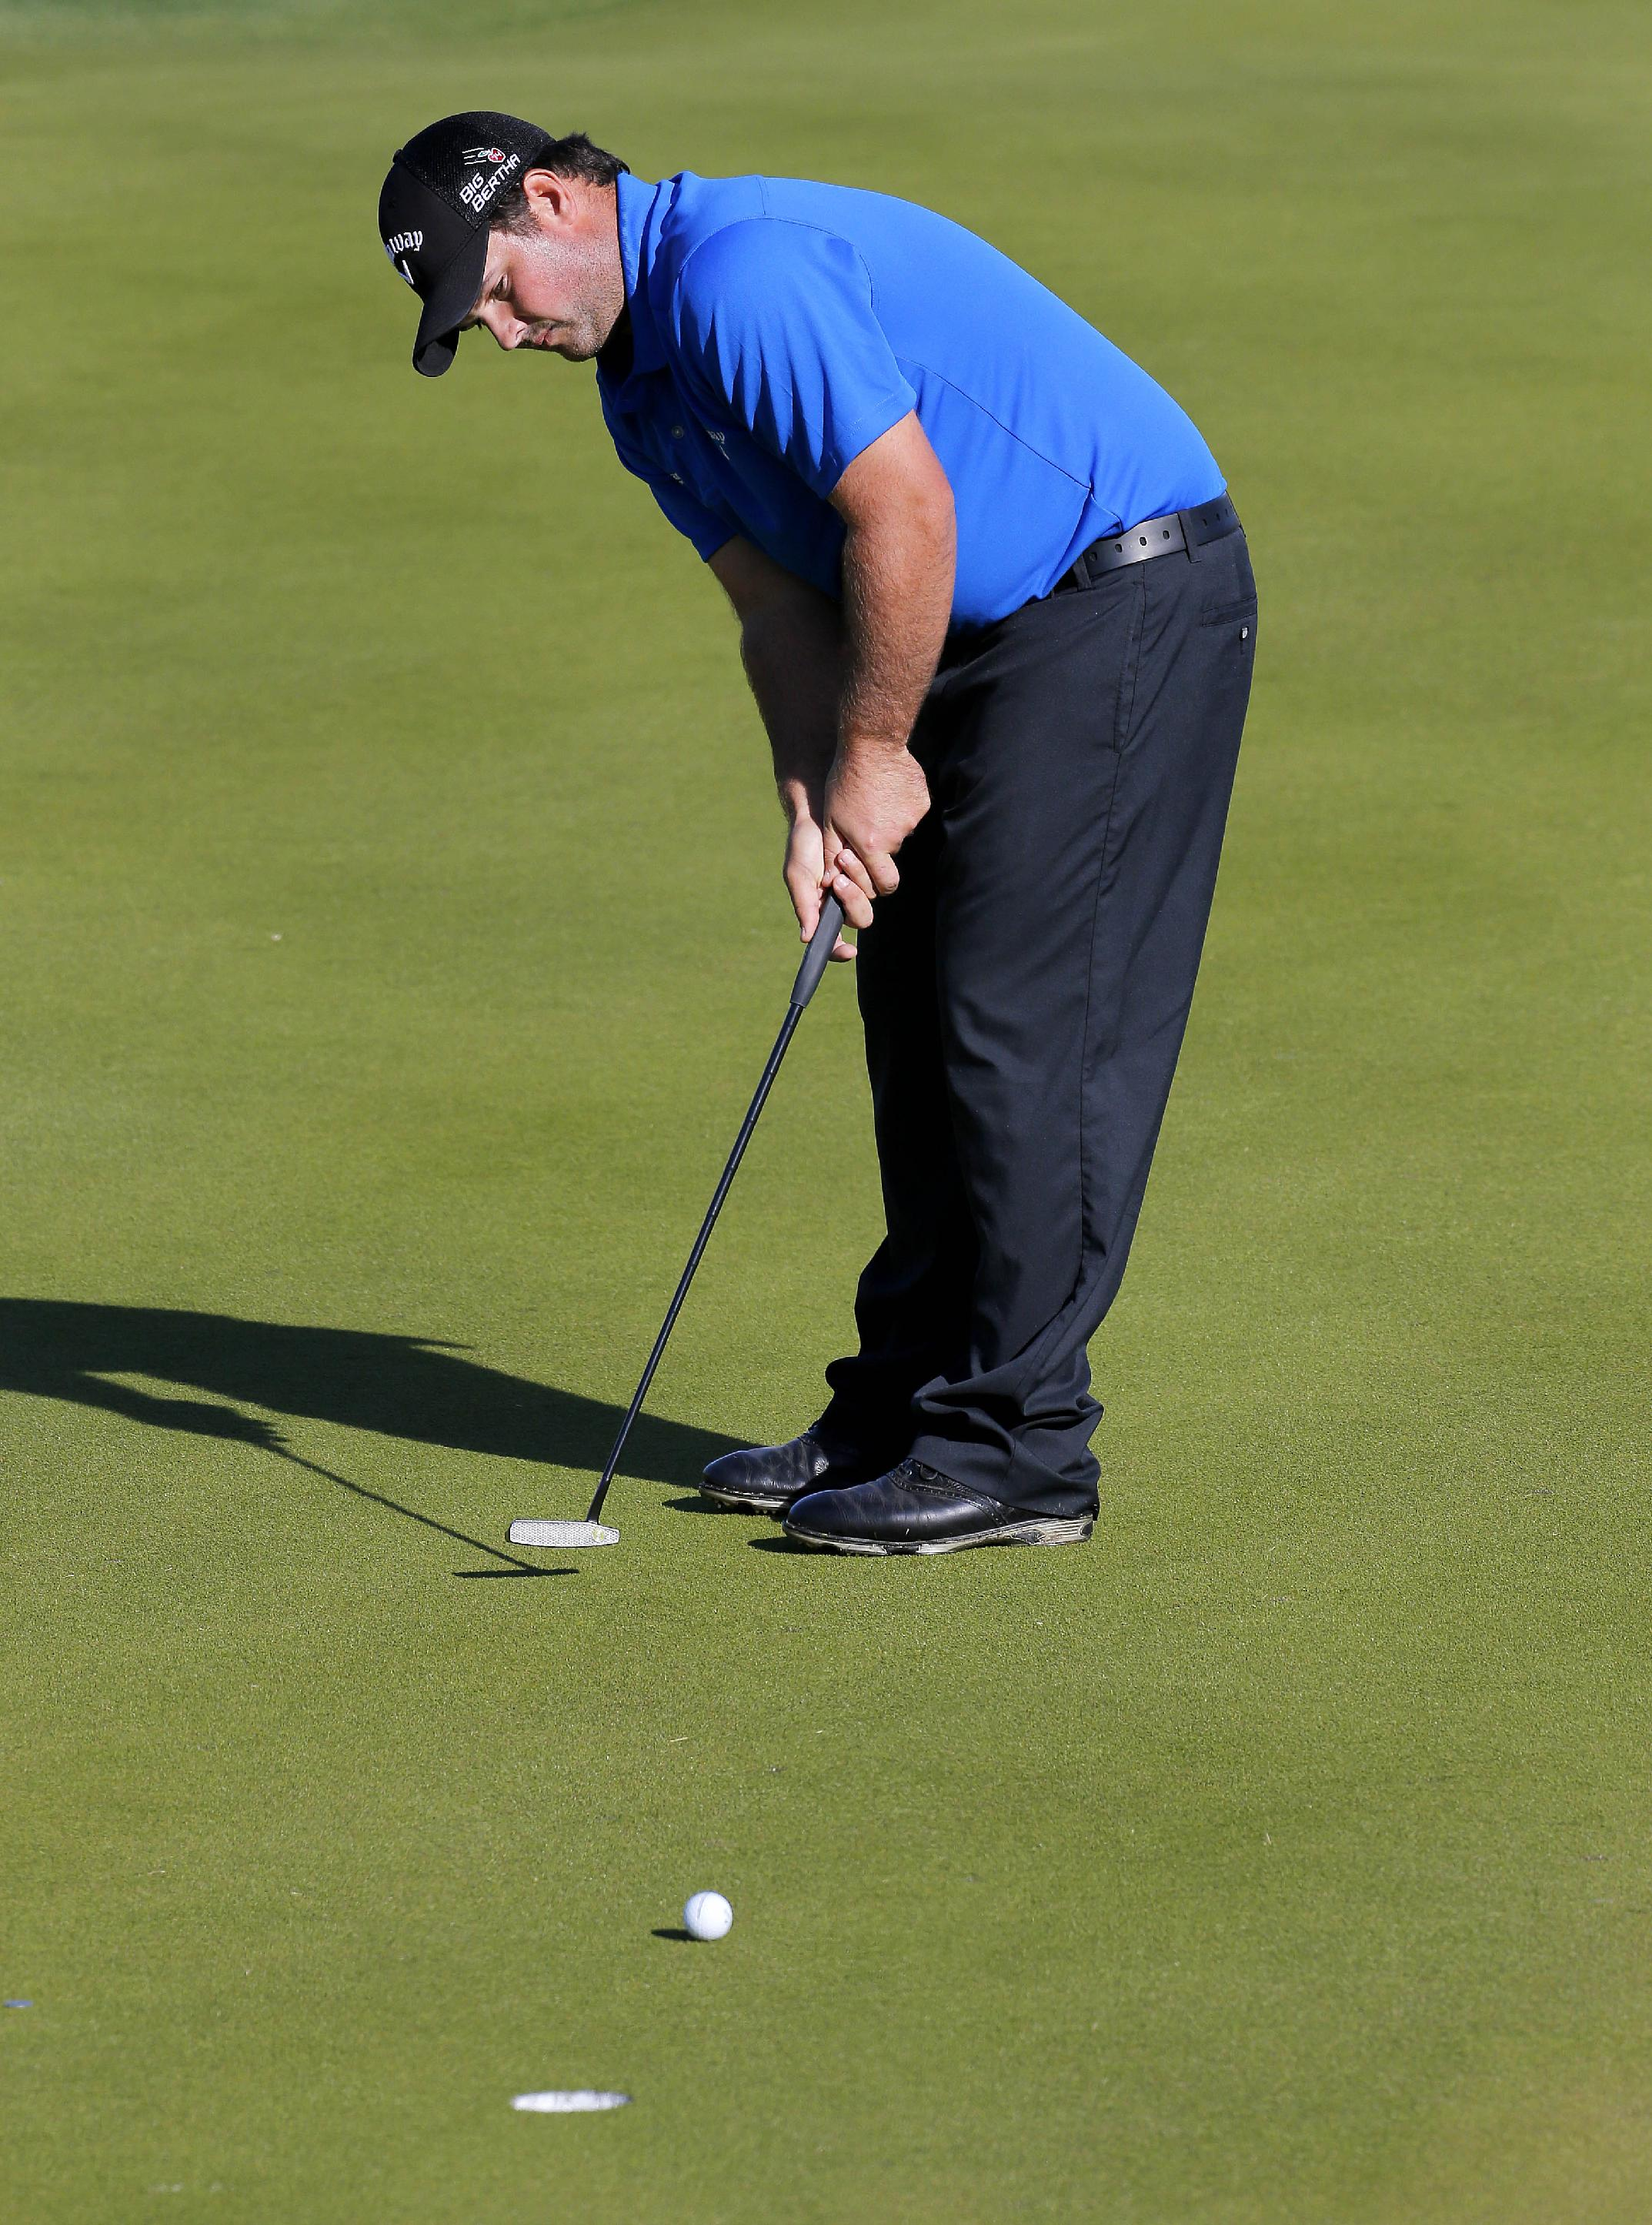 Patrick Reed putts for birdie on the 14th green during the third round of the Humana Challenge PGA golf tournament on the Nicklaus Private course at PGA West, Saturday, Jan. 18, 2014, in La Quinta, Calif